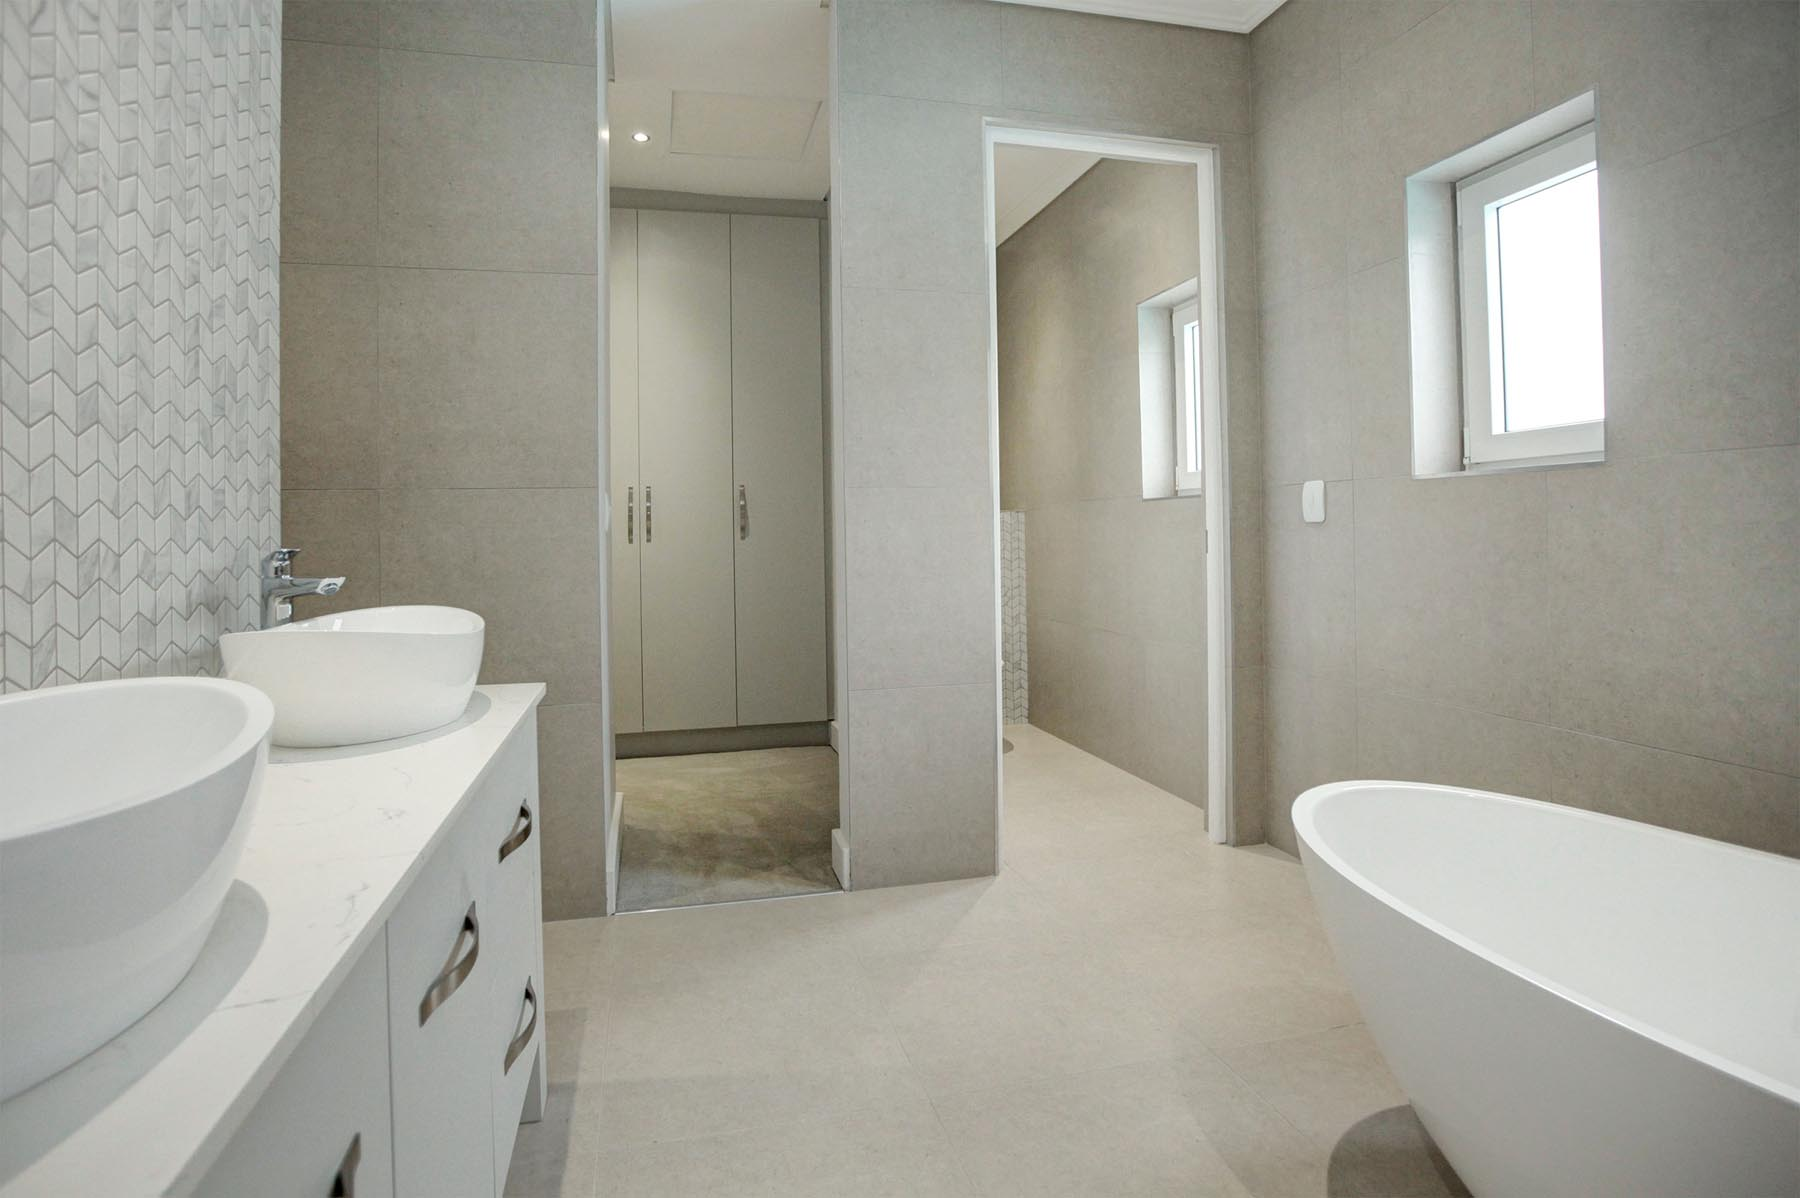 11 En-suite and dressing area